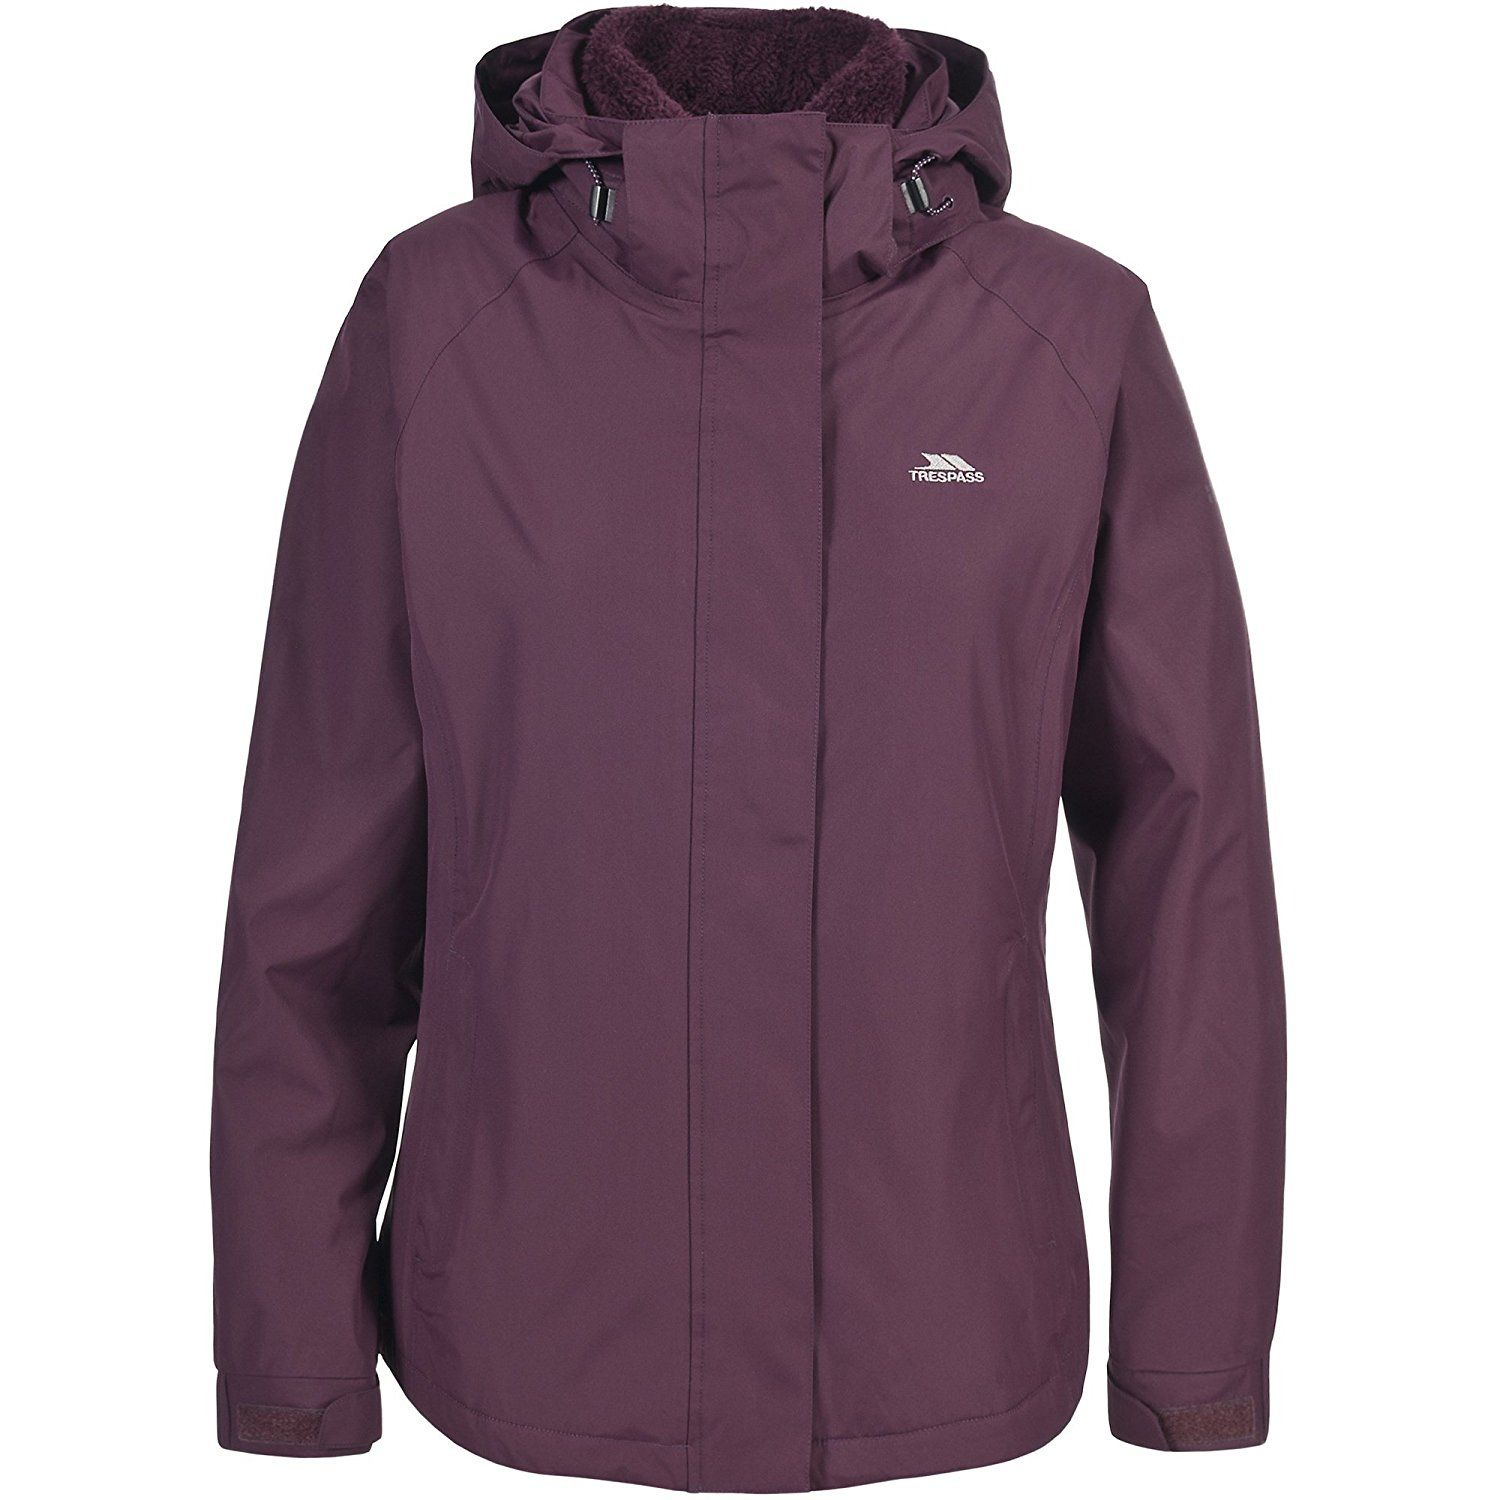 new cheap good quality good service Trespass Womens/Ladies Trillium 3 In 1 Waterproof Jacket -- This ...